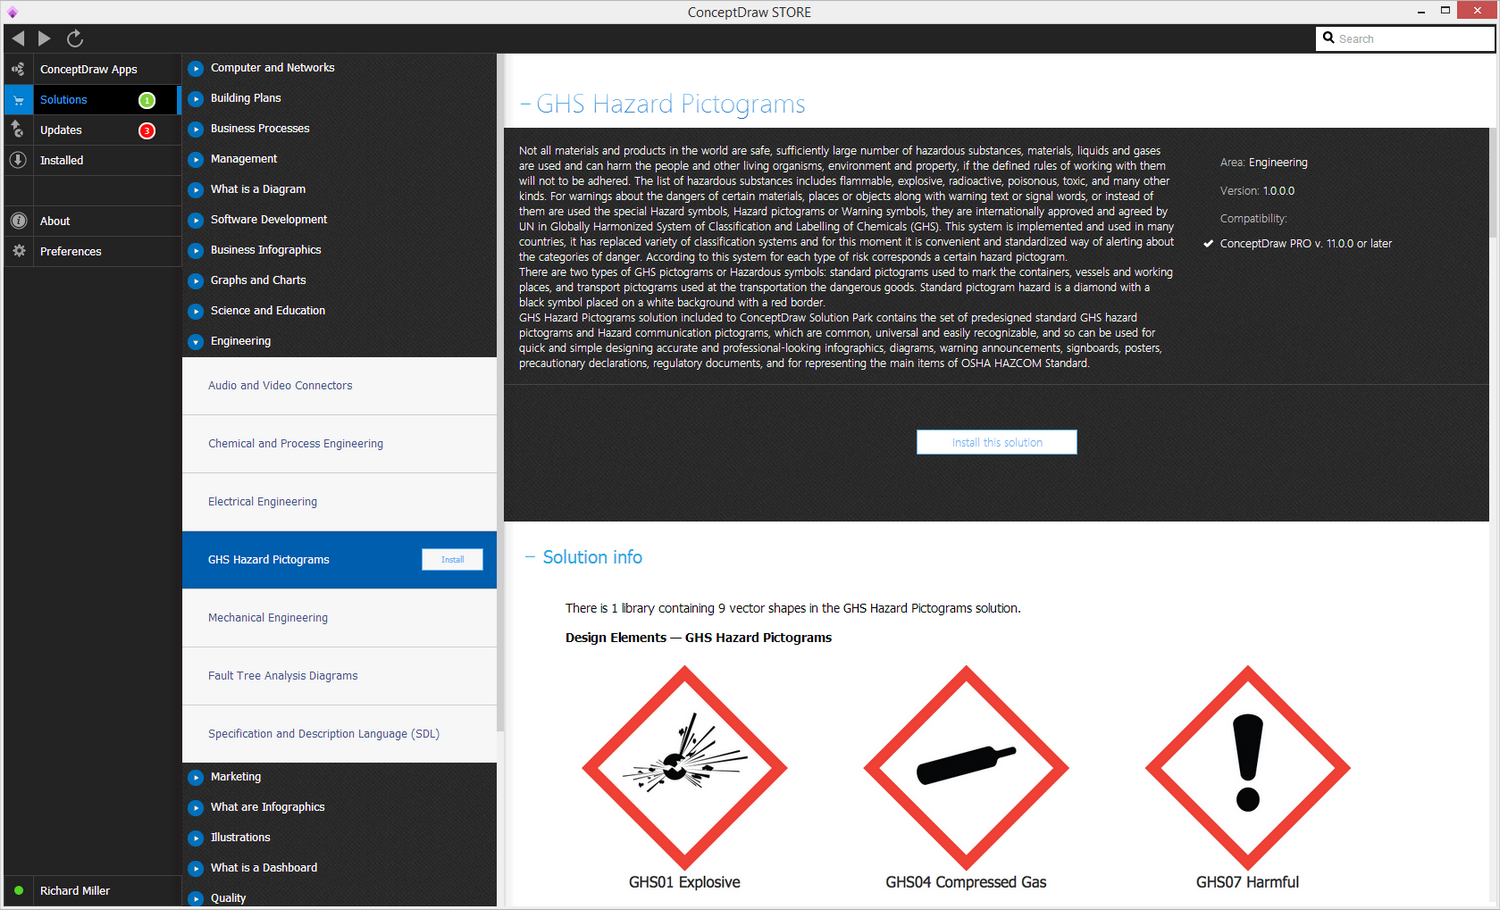 GHS Hazard Pictograms Solution - Install